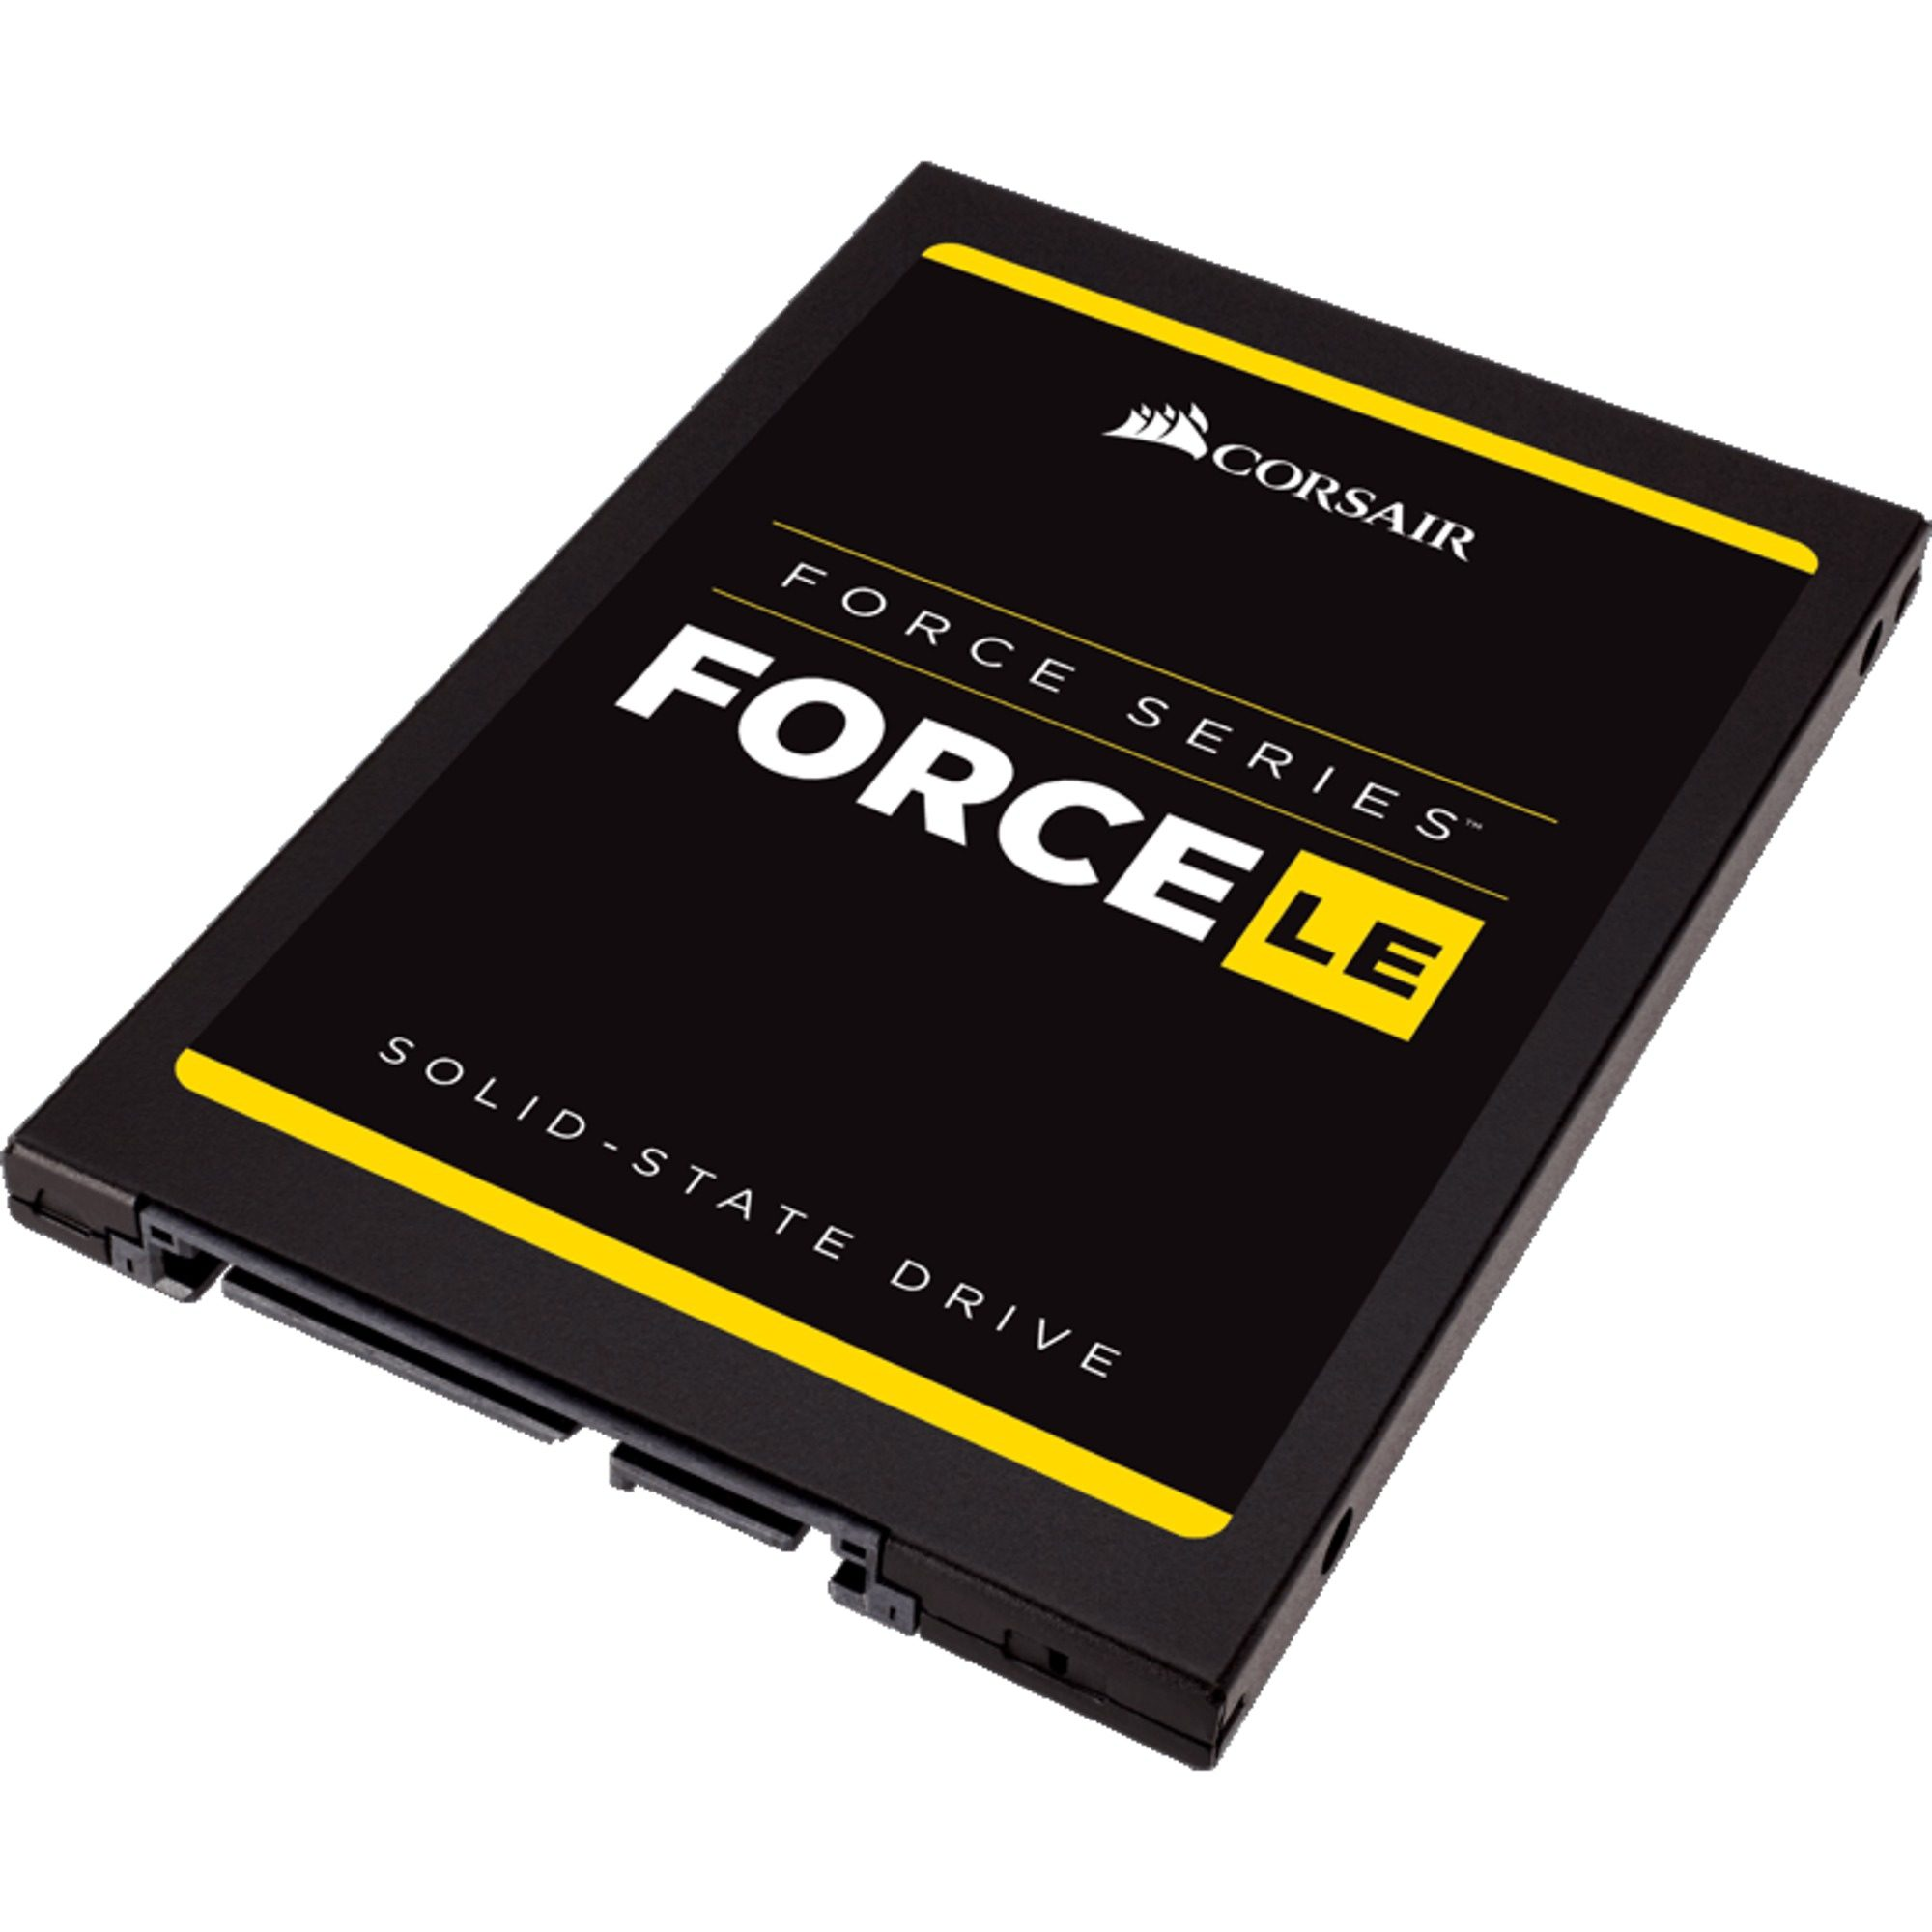 Corsair Solid State Drive »CSSD-F960GBLEB 960 GB«